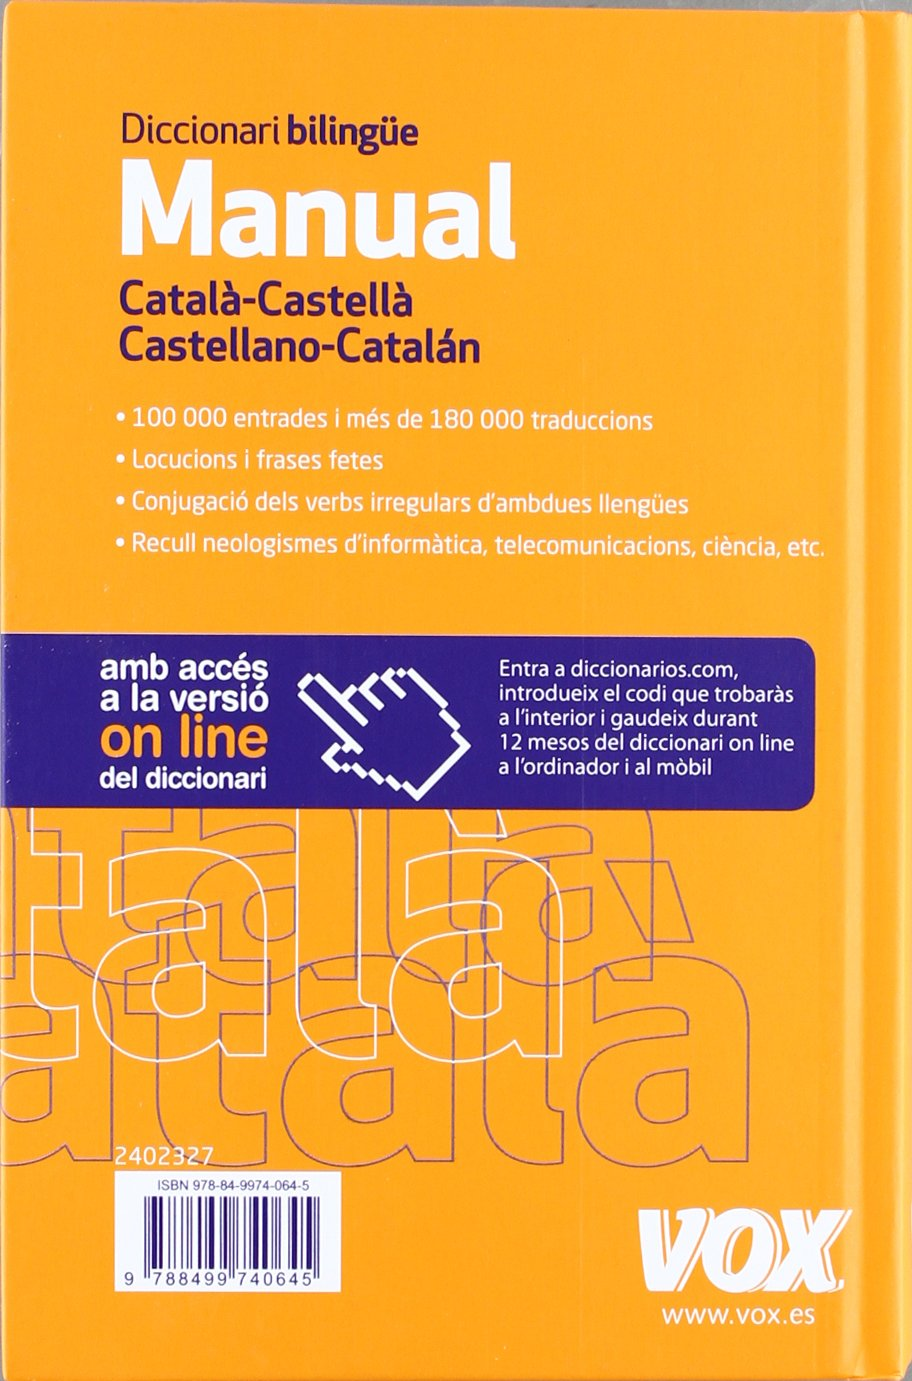 Diccionari Manual Catala Castella Castellano Catalan